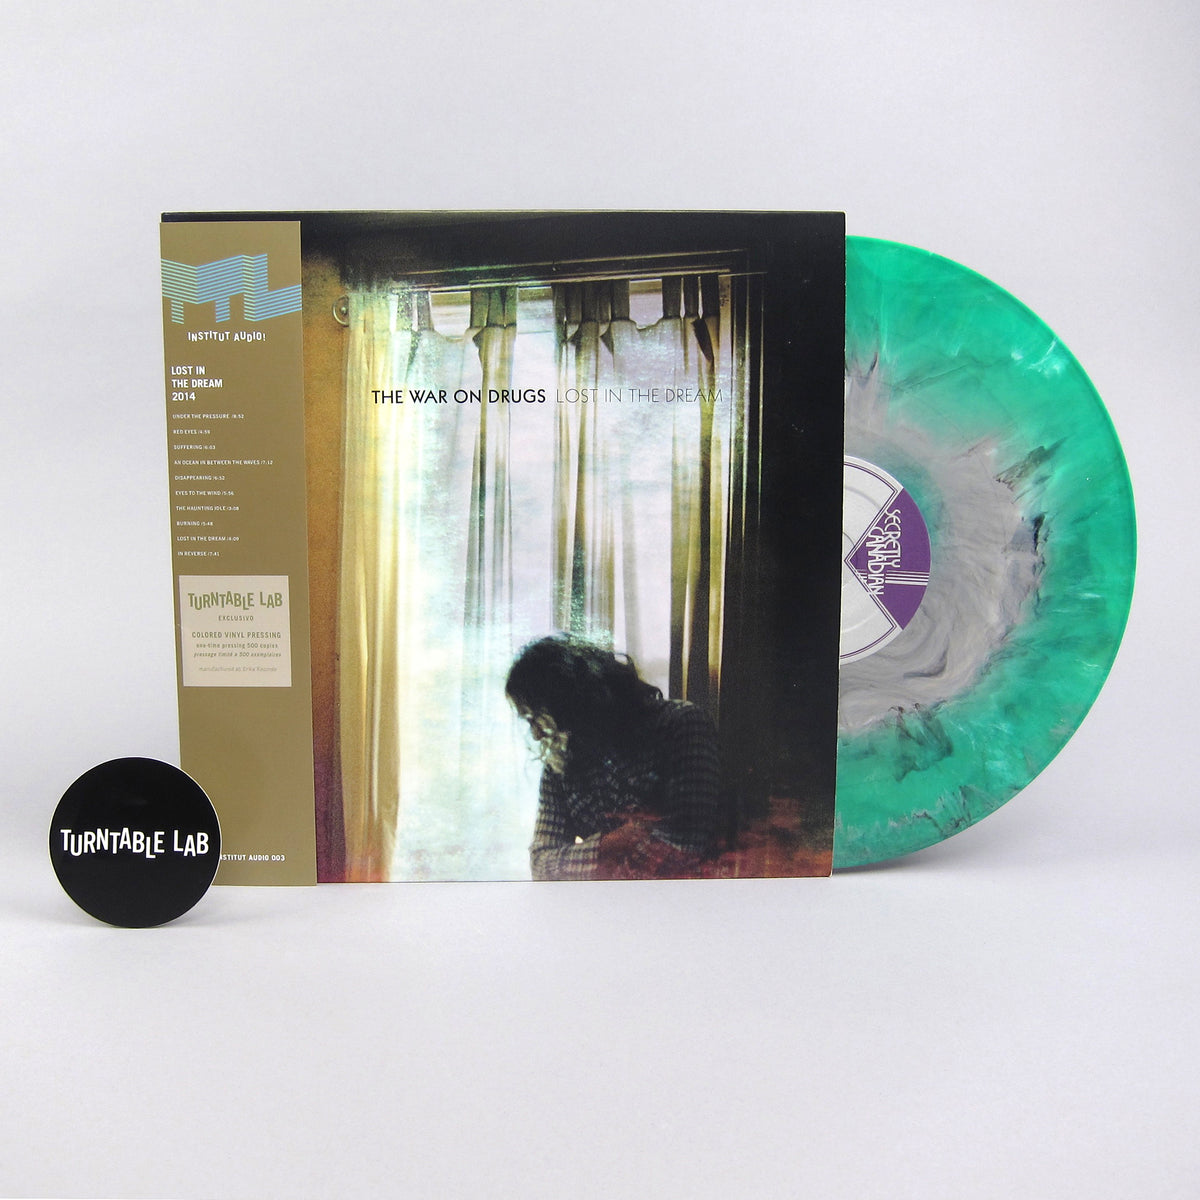 The War On Drugs: Lost In The Dream (Colored Vinyl) Vinyl 2LP - Turntable Lab Exclusive - LIMIT 2 PER CUSTOMER